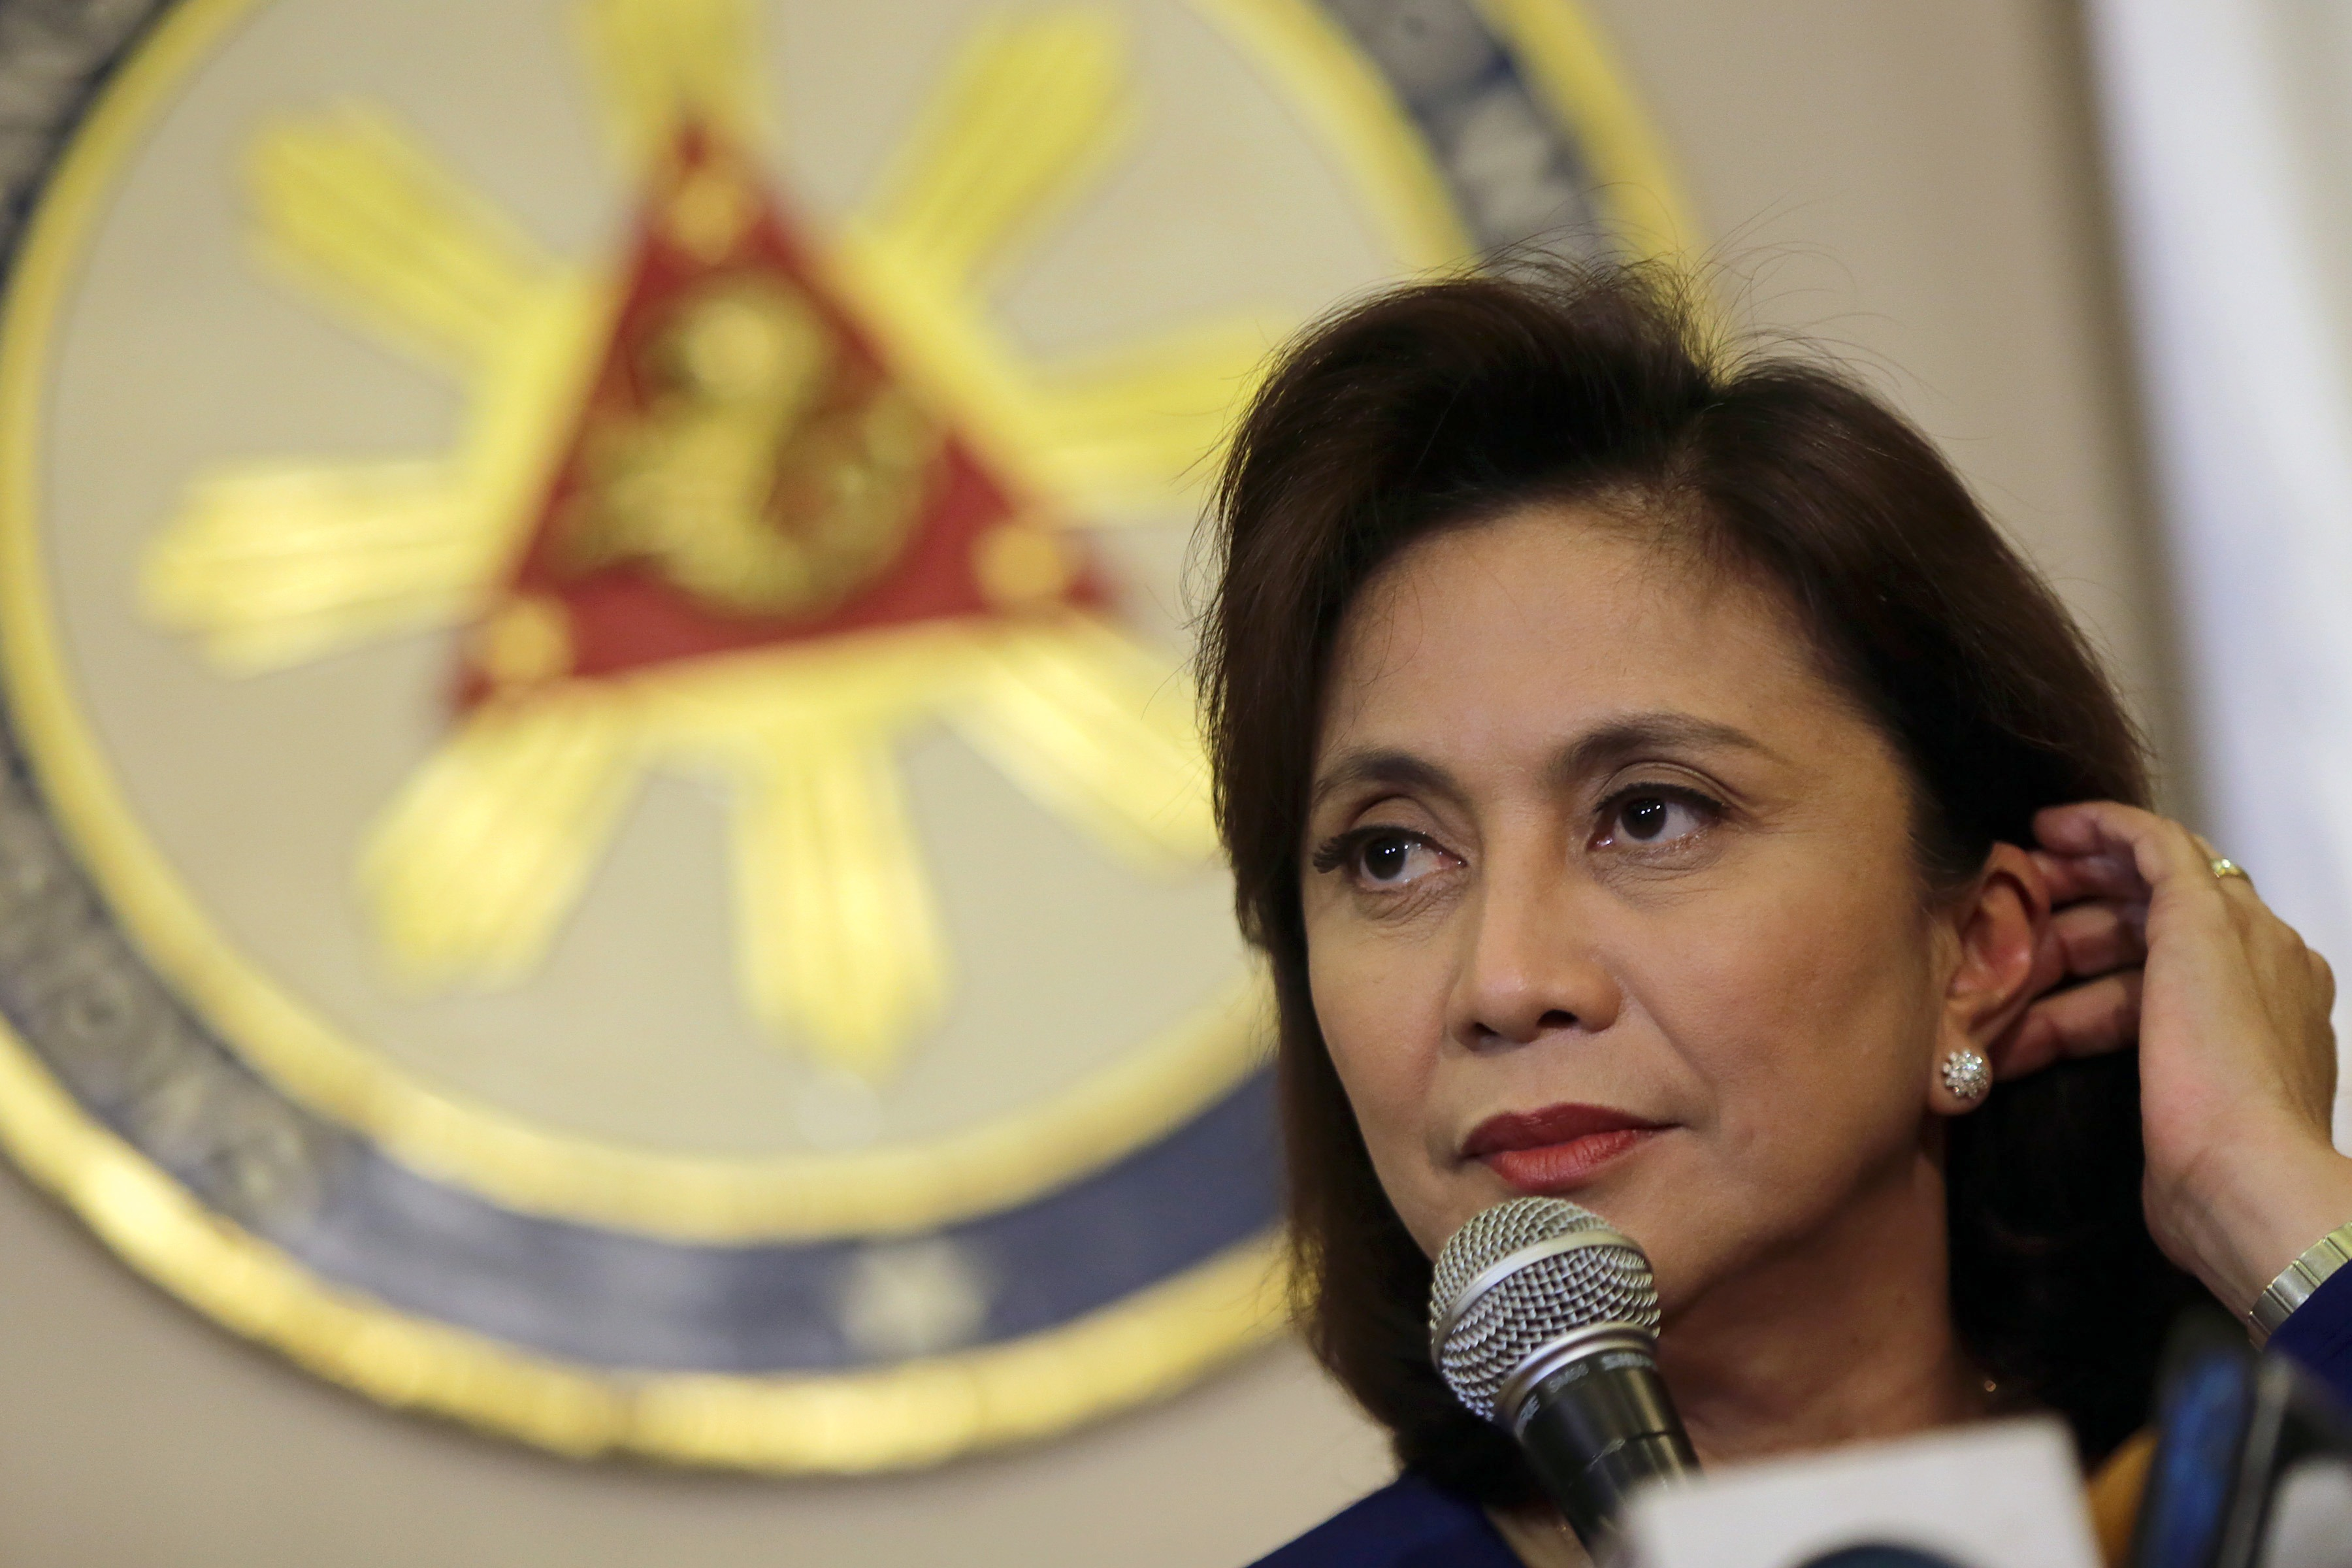 Philippine Vice President Leni Robredo speaks during a press conference in Quezon City, the Philippines, Dec. 5, 2016.